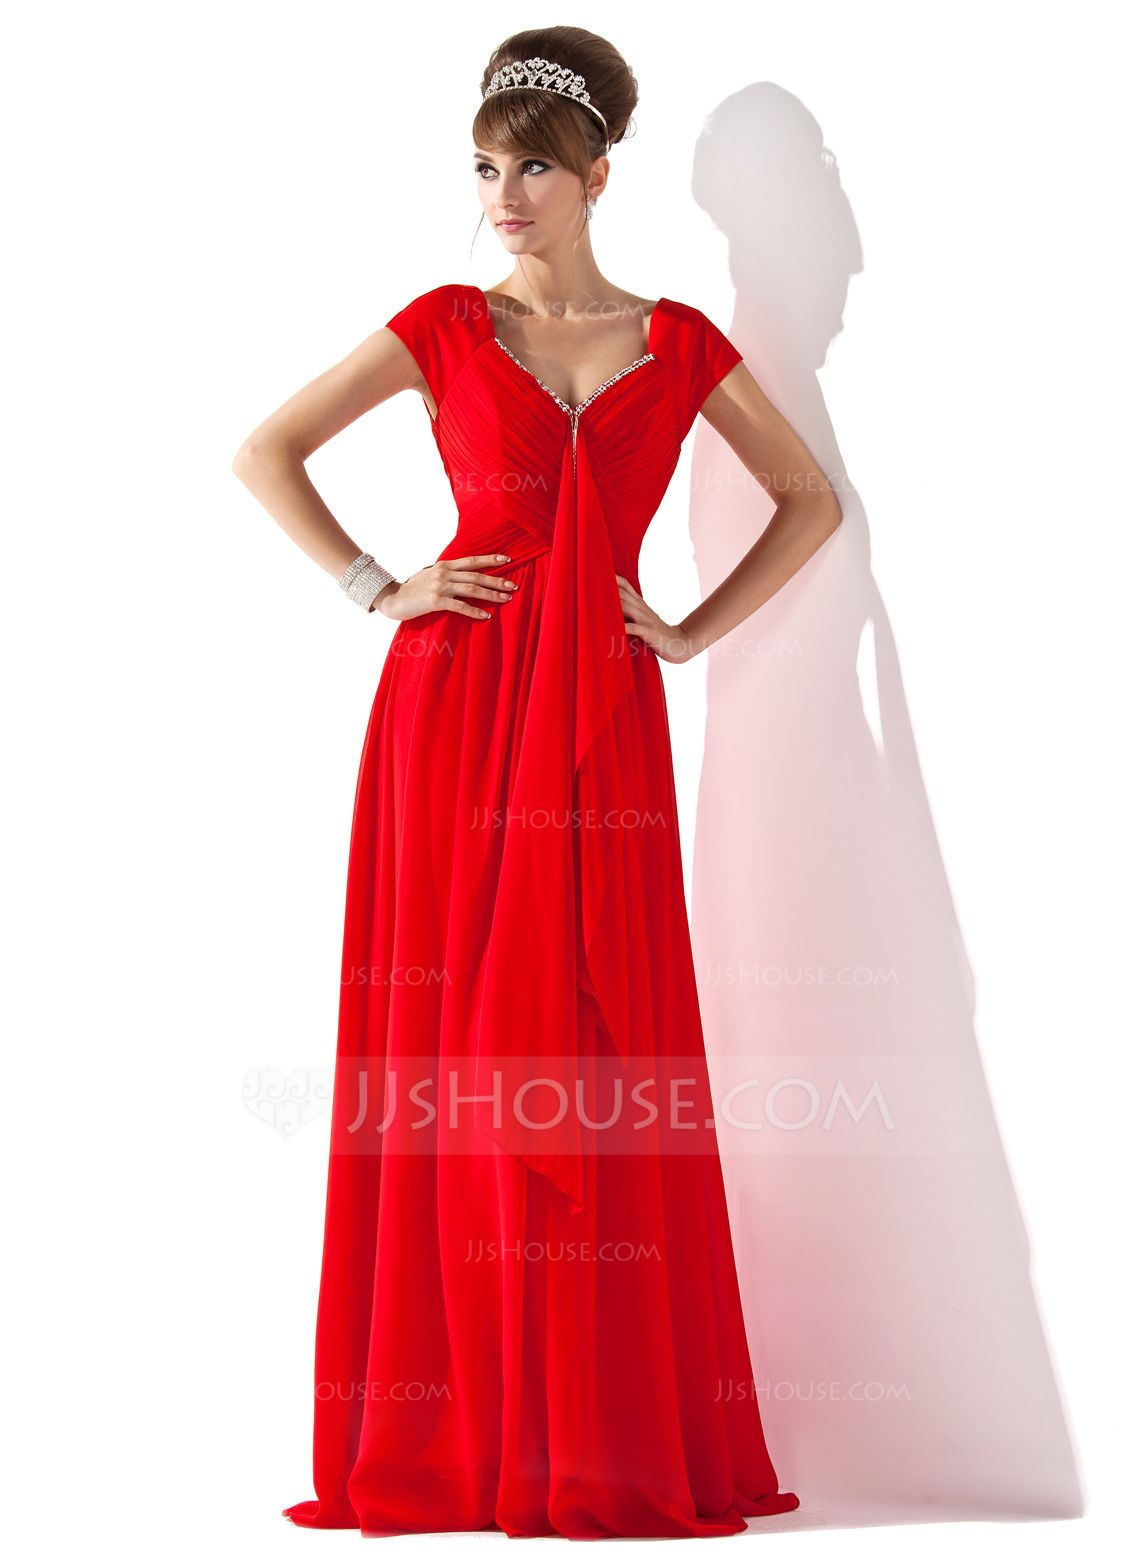 A-Line/Princess V-neck Floor-Length Chiffon Mother of the Bride Dress With Beading Cascading Ruffles (008013794) - JJsHouse